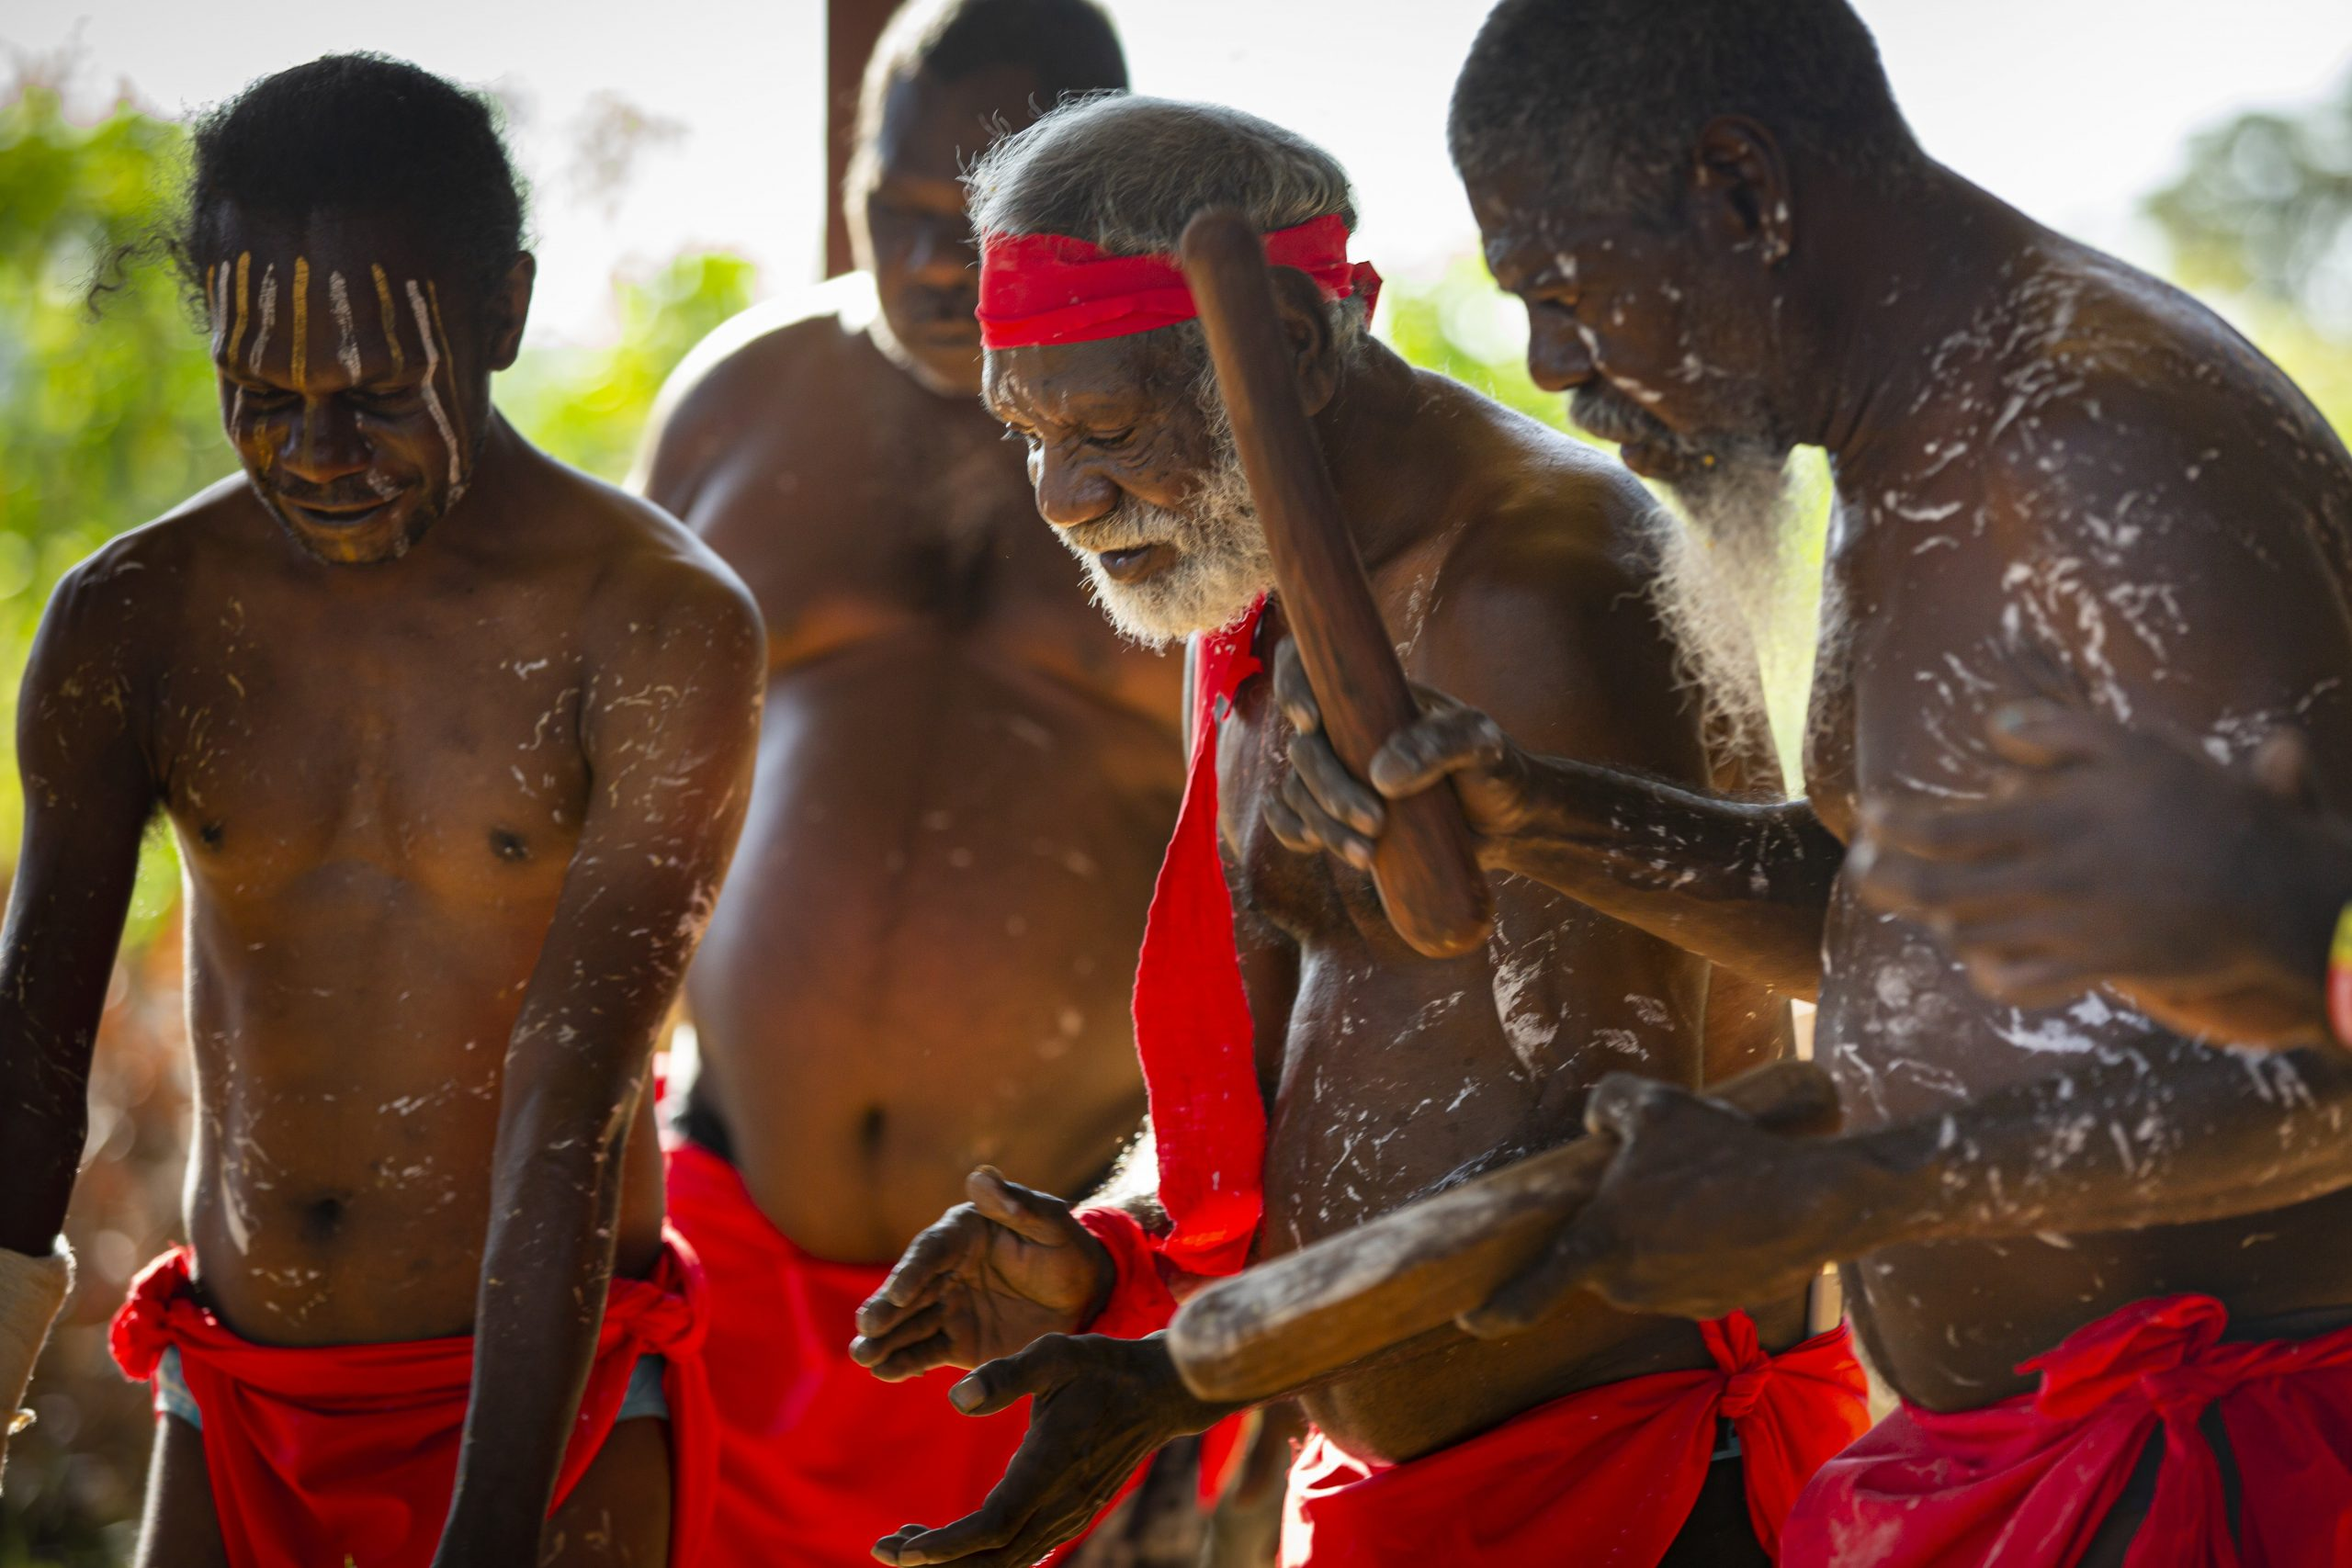 Kakadu & Tiwi Islands Explorer | Aboriginal men performing a traditional dance, Tiwi Islands, Northern Territory